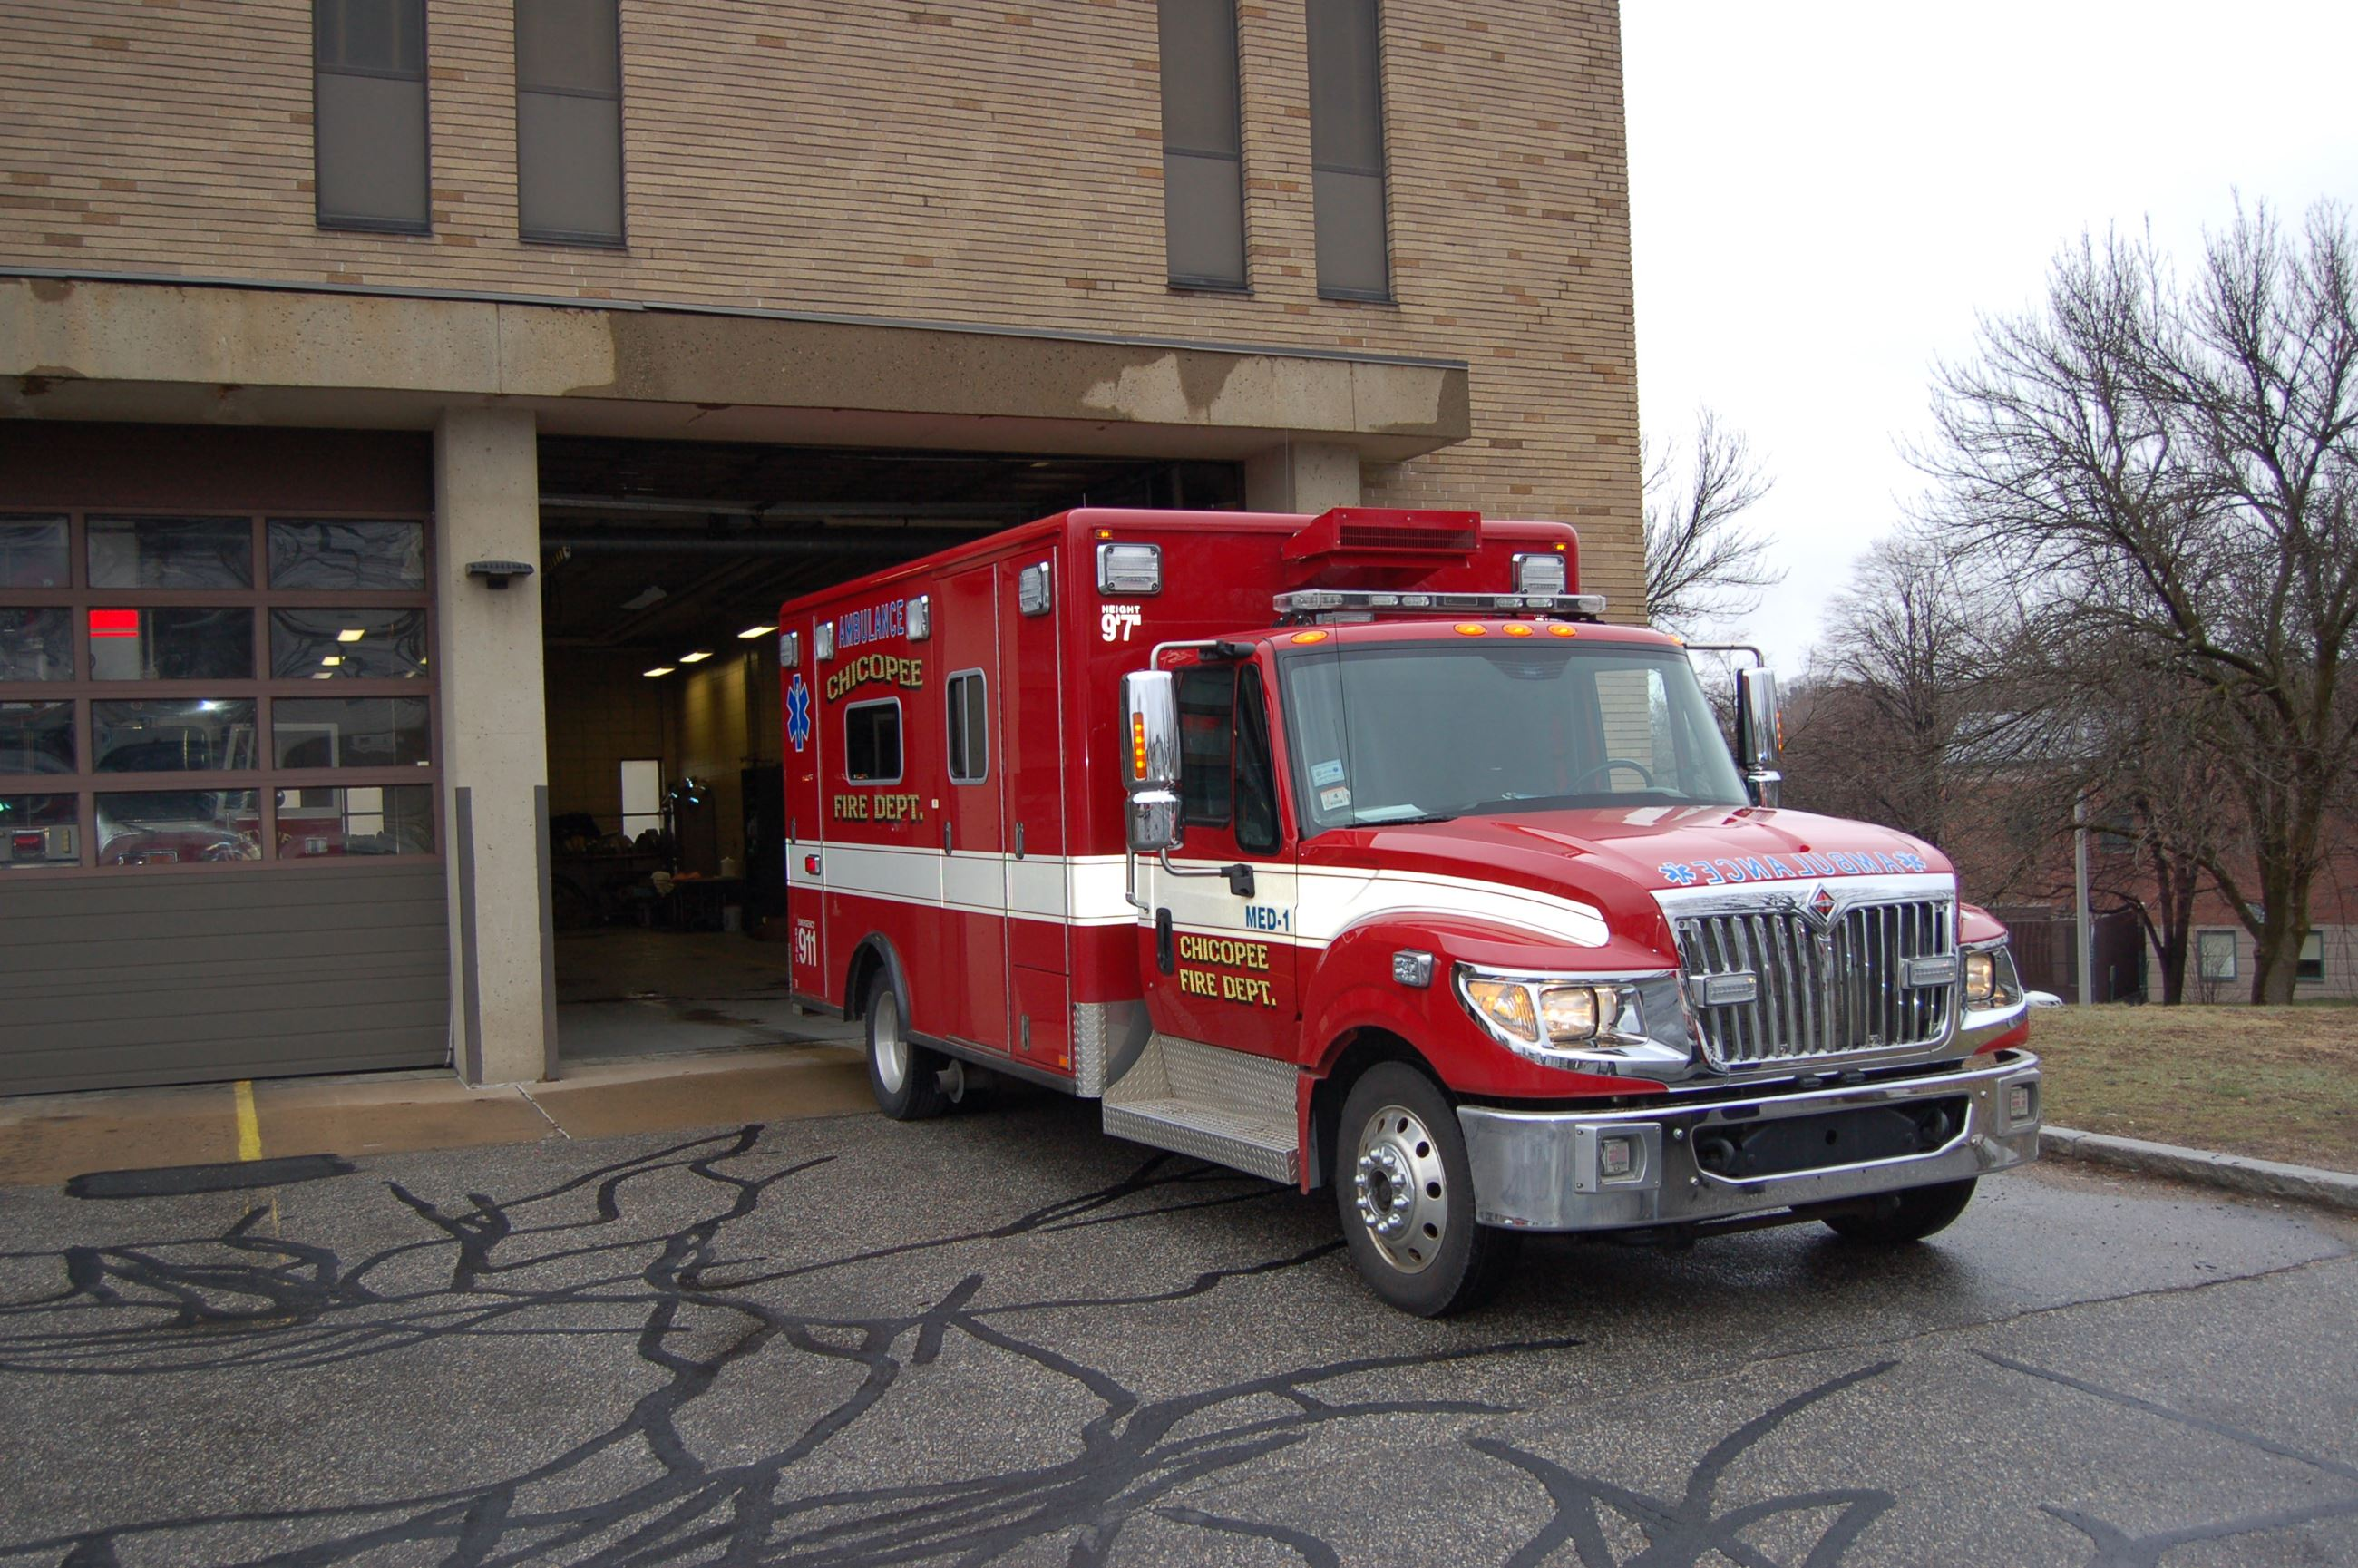 The City Council Tuesday night approved an order from Mayor Richard Kos for $250,000 for the purchase of a new ambulance for the Chicopee Fire Department.